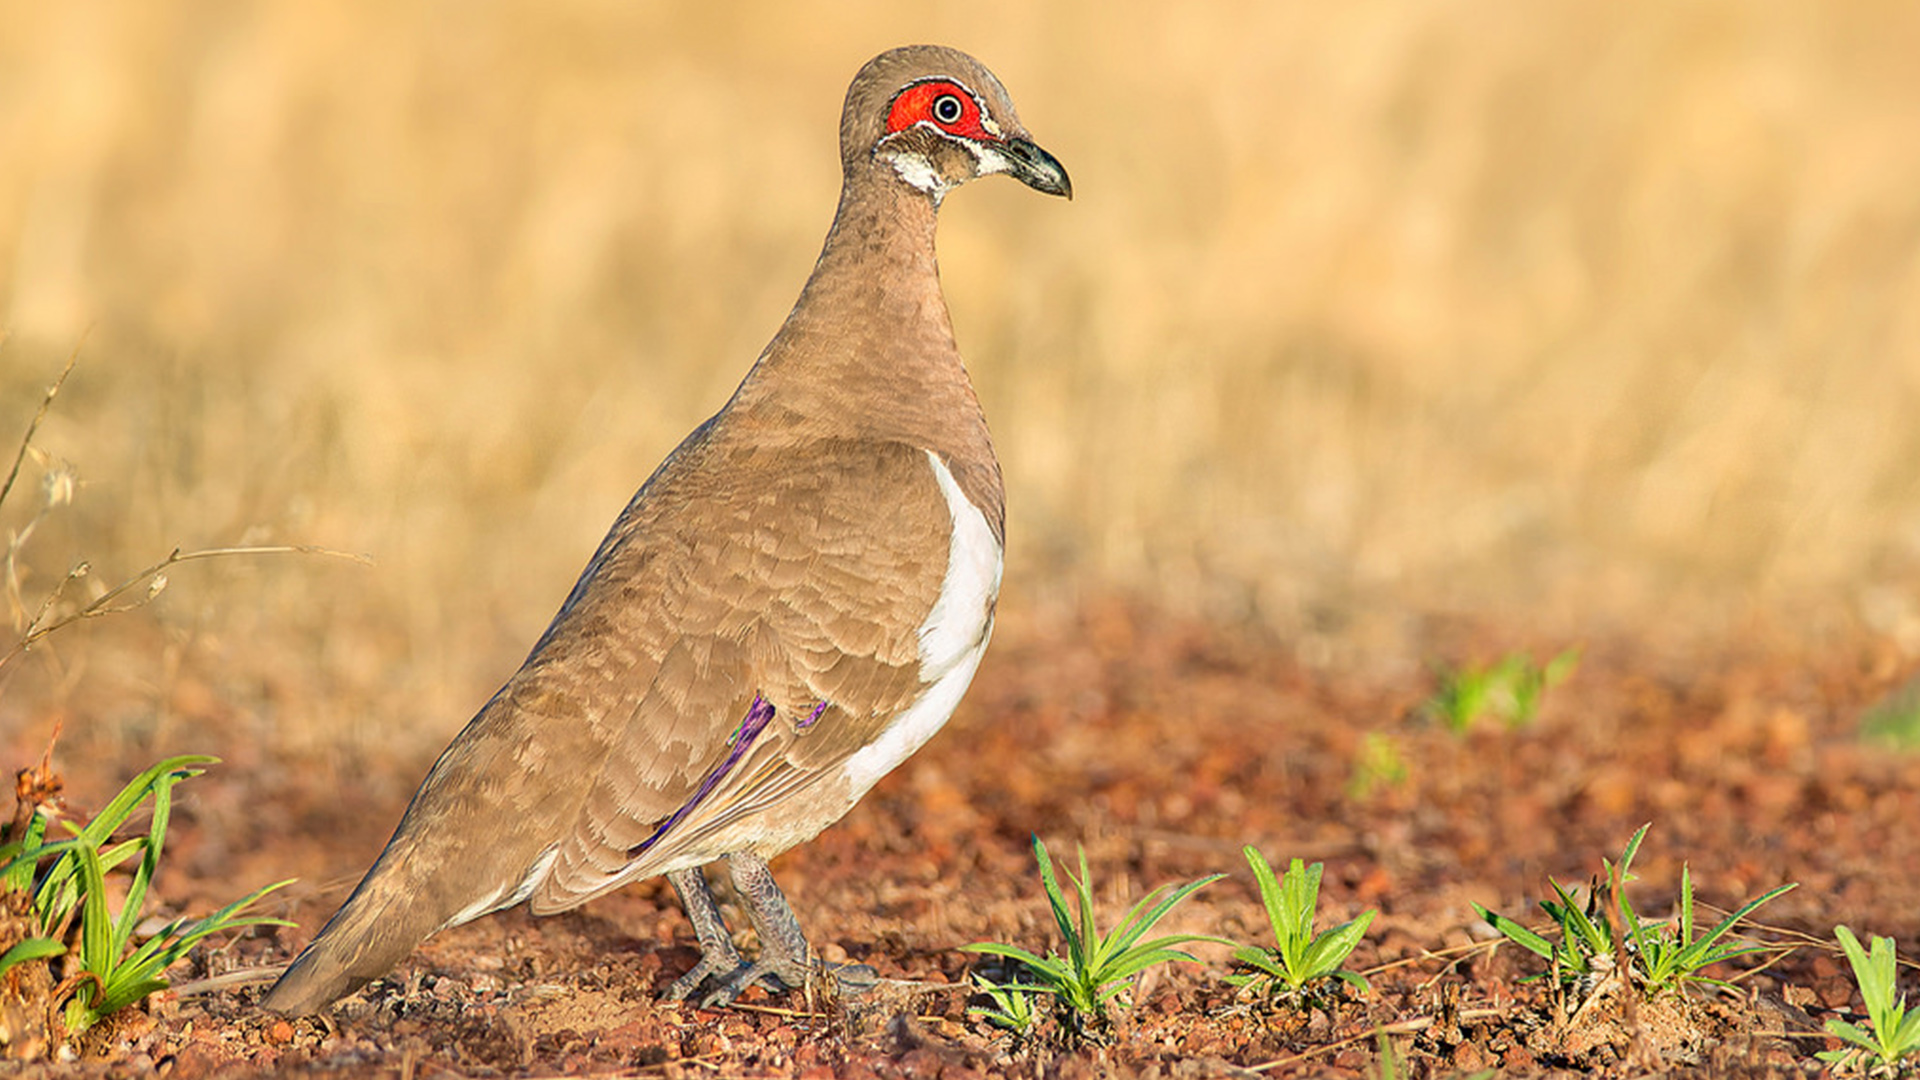 The Partridge Pigeon is a threatened species that our work aims to protect